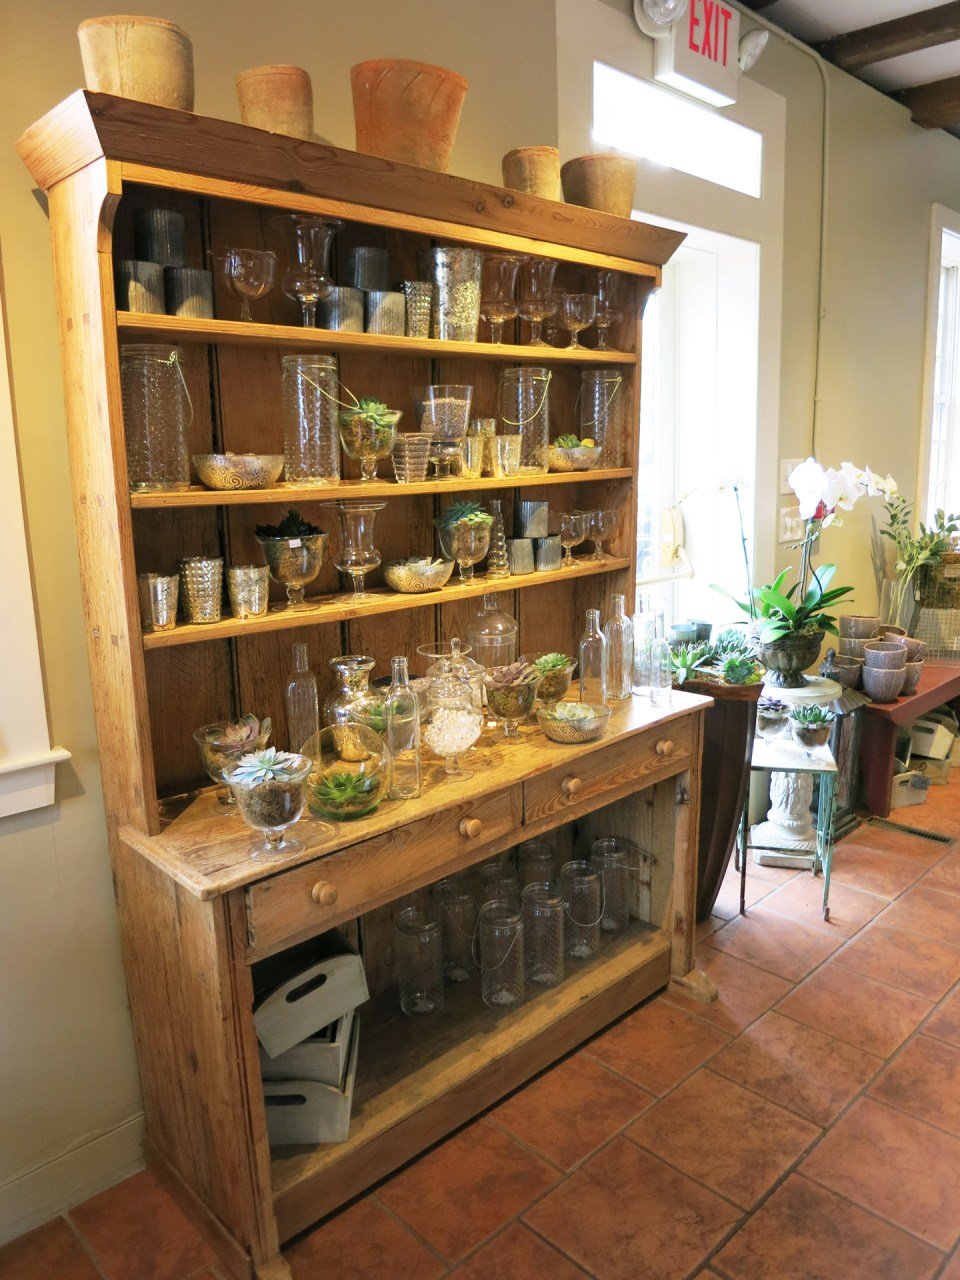 Antique wooden hutch displaying glassware and succulents in Studio 539 located on Wickenden Street in Providence, RI